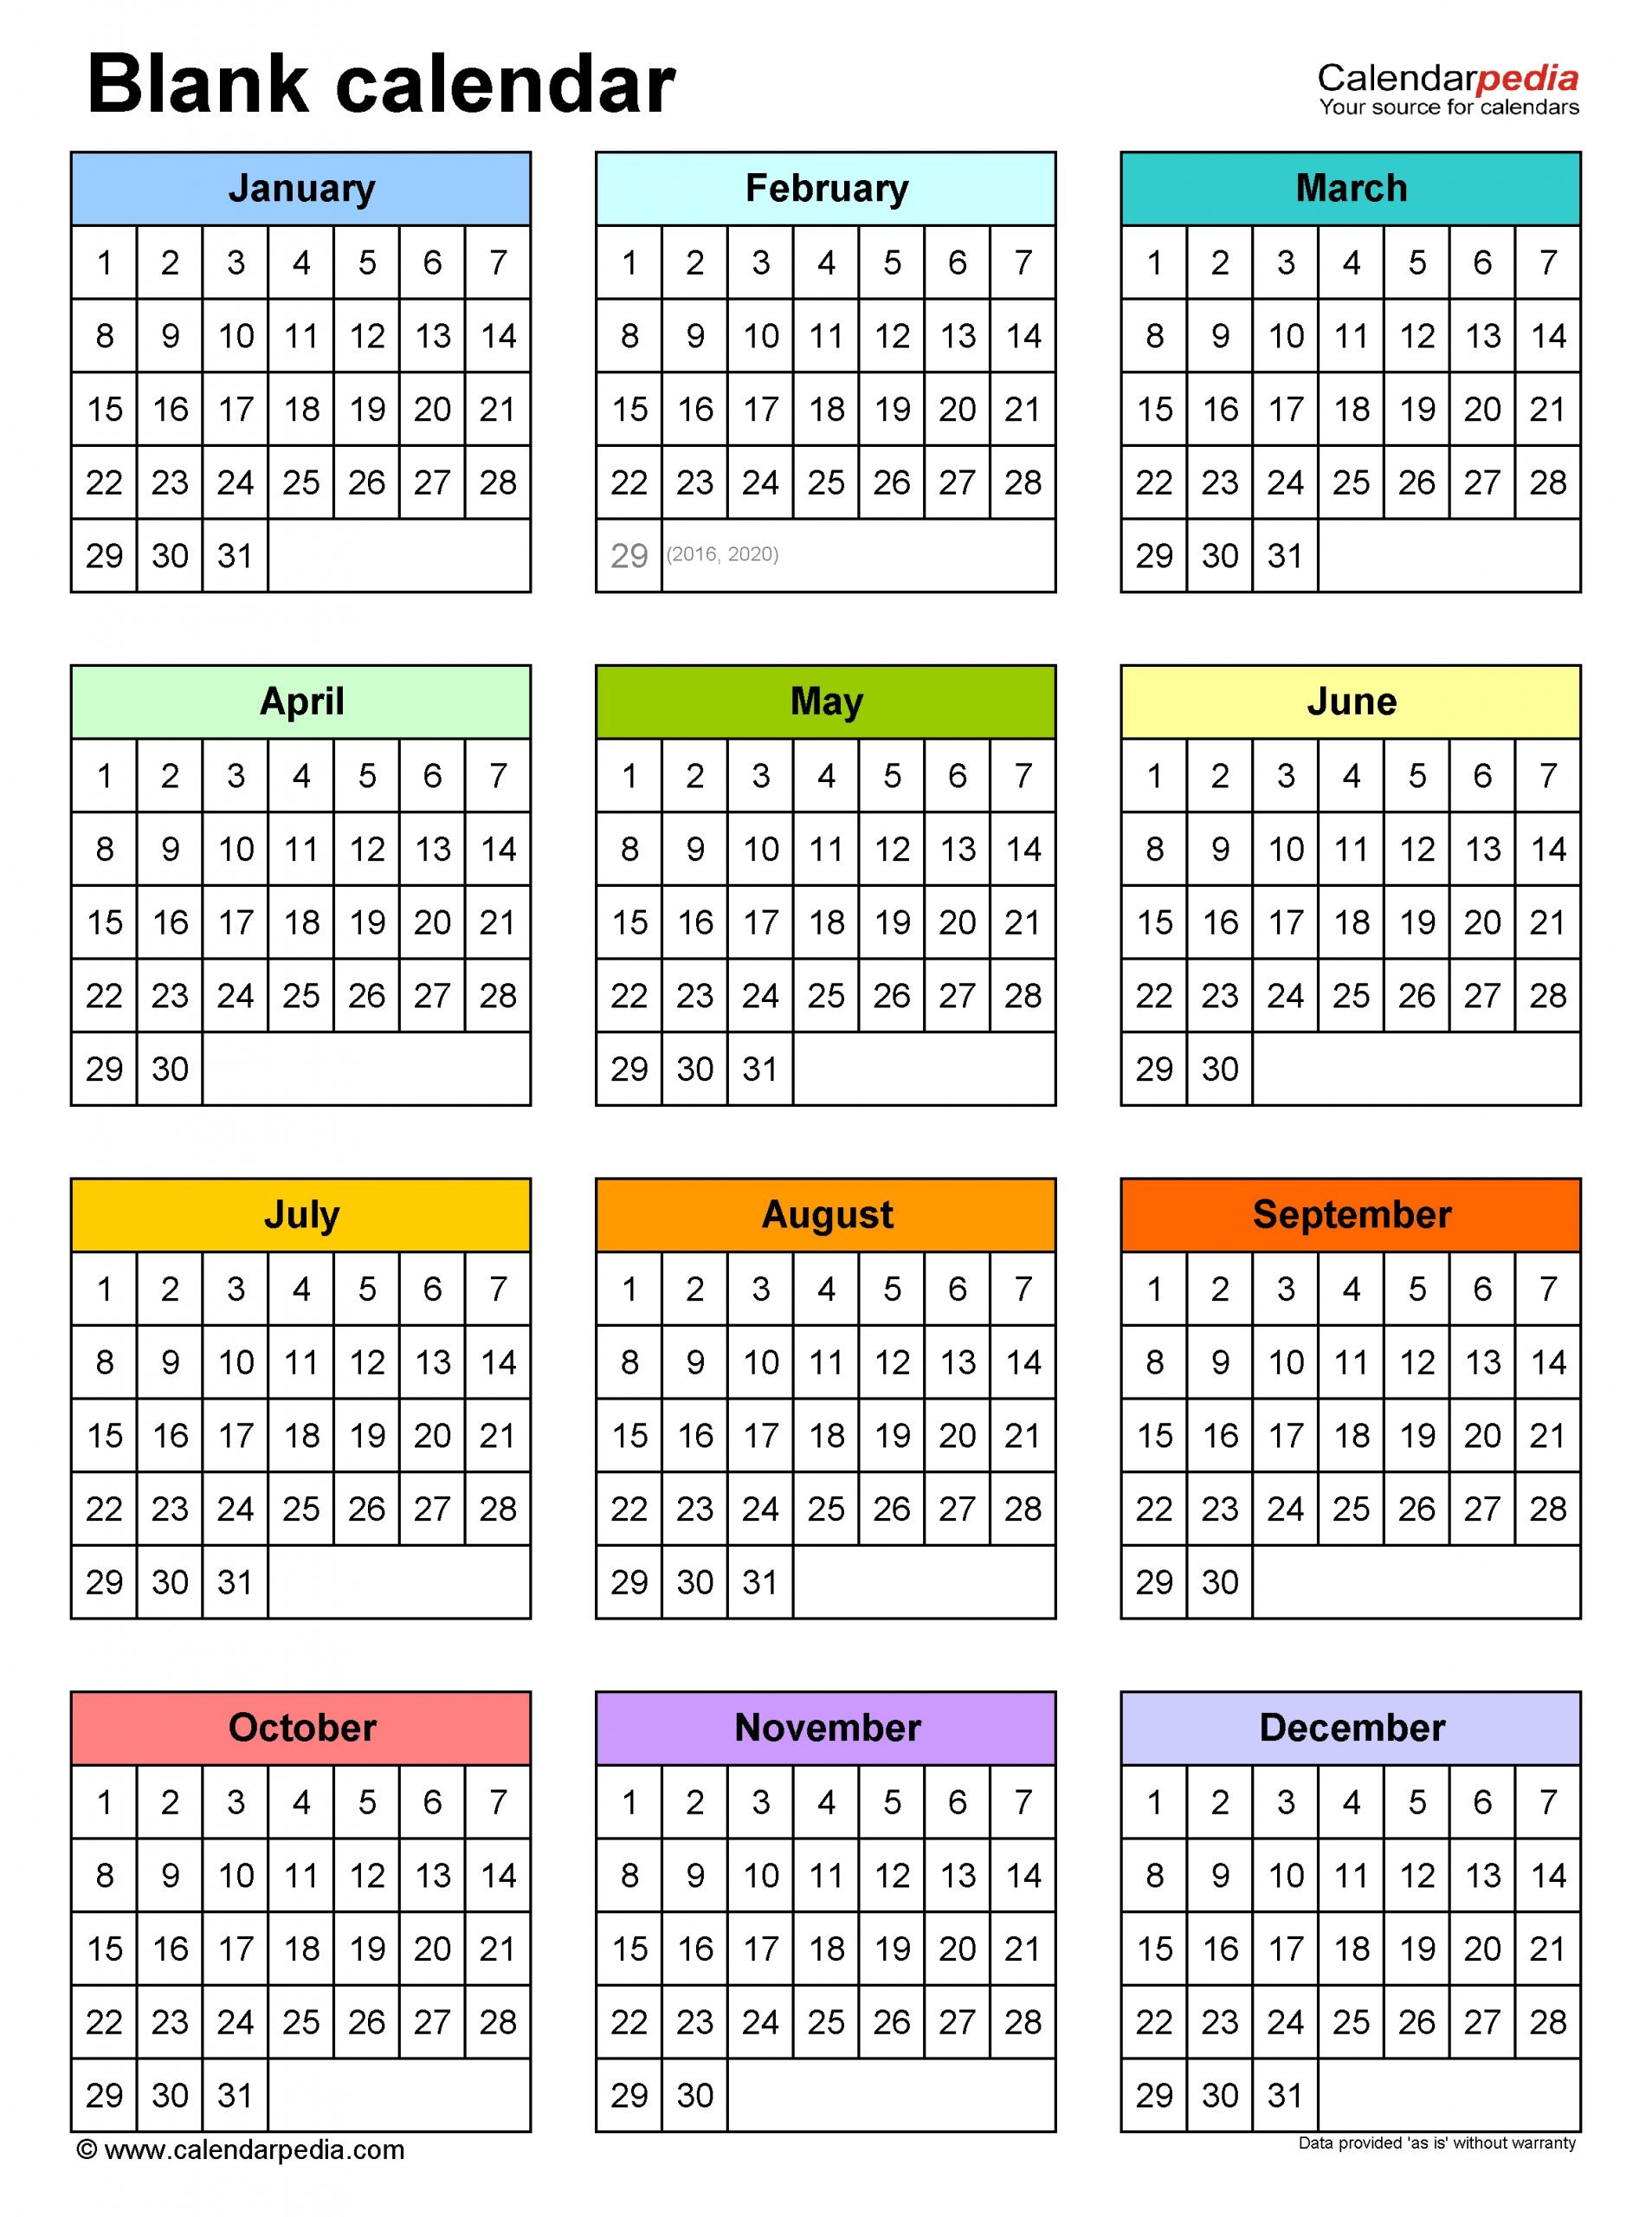 Blank Calendars - Free Printable Microsoft Word Templates  6 Month Calendar Template Word